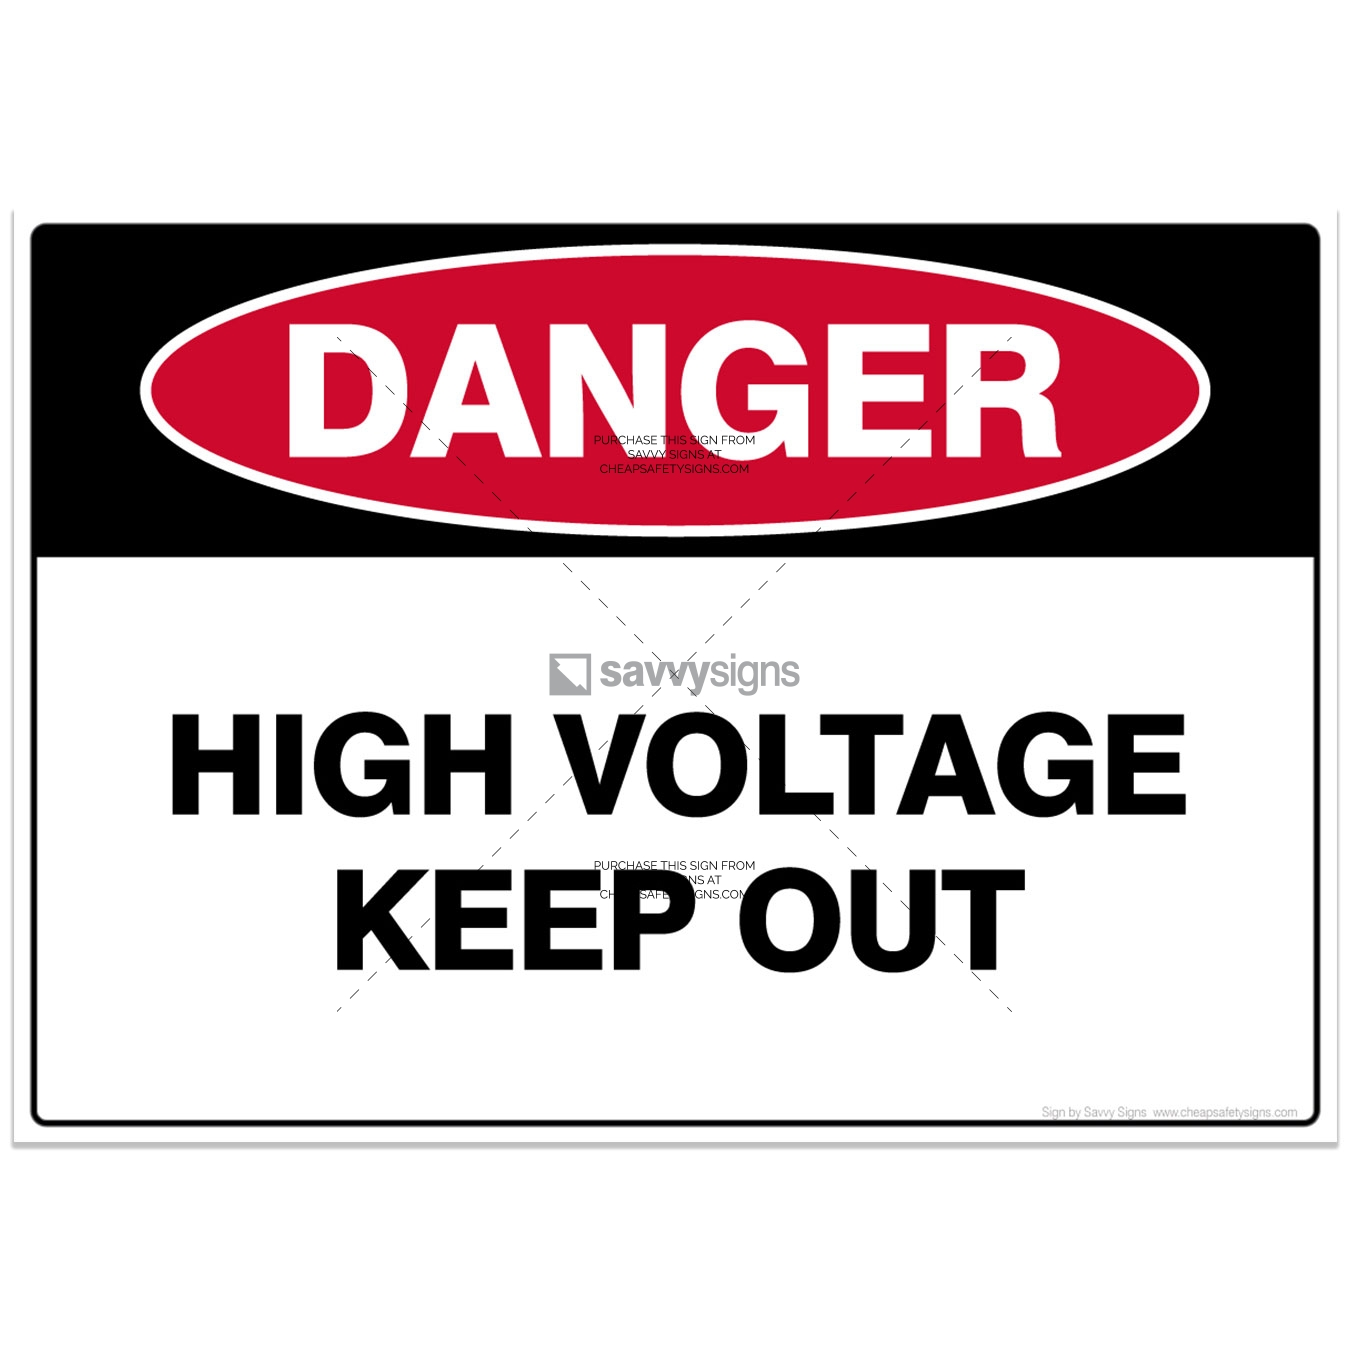 SSDAN3050-DANGER-Workplace-Safety-Signs_Savvy-Signs_v4.1